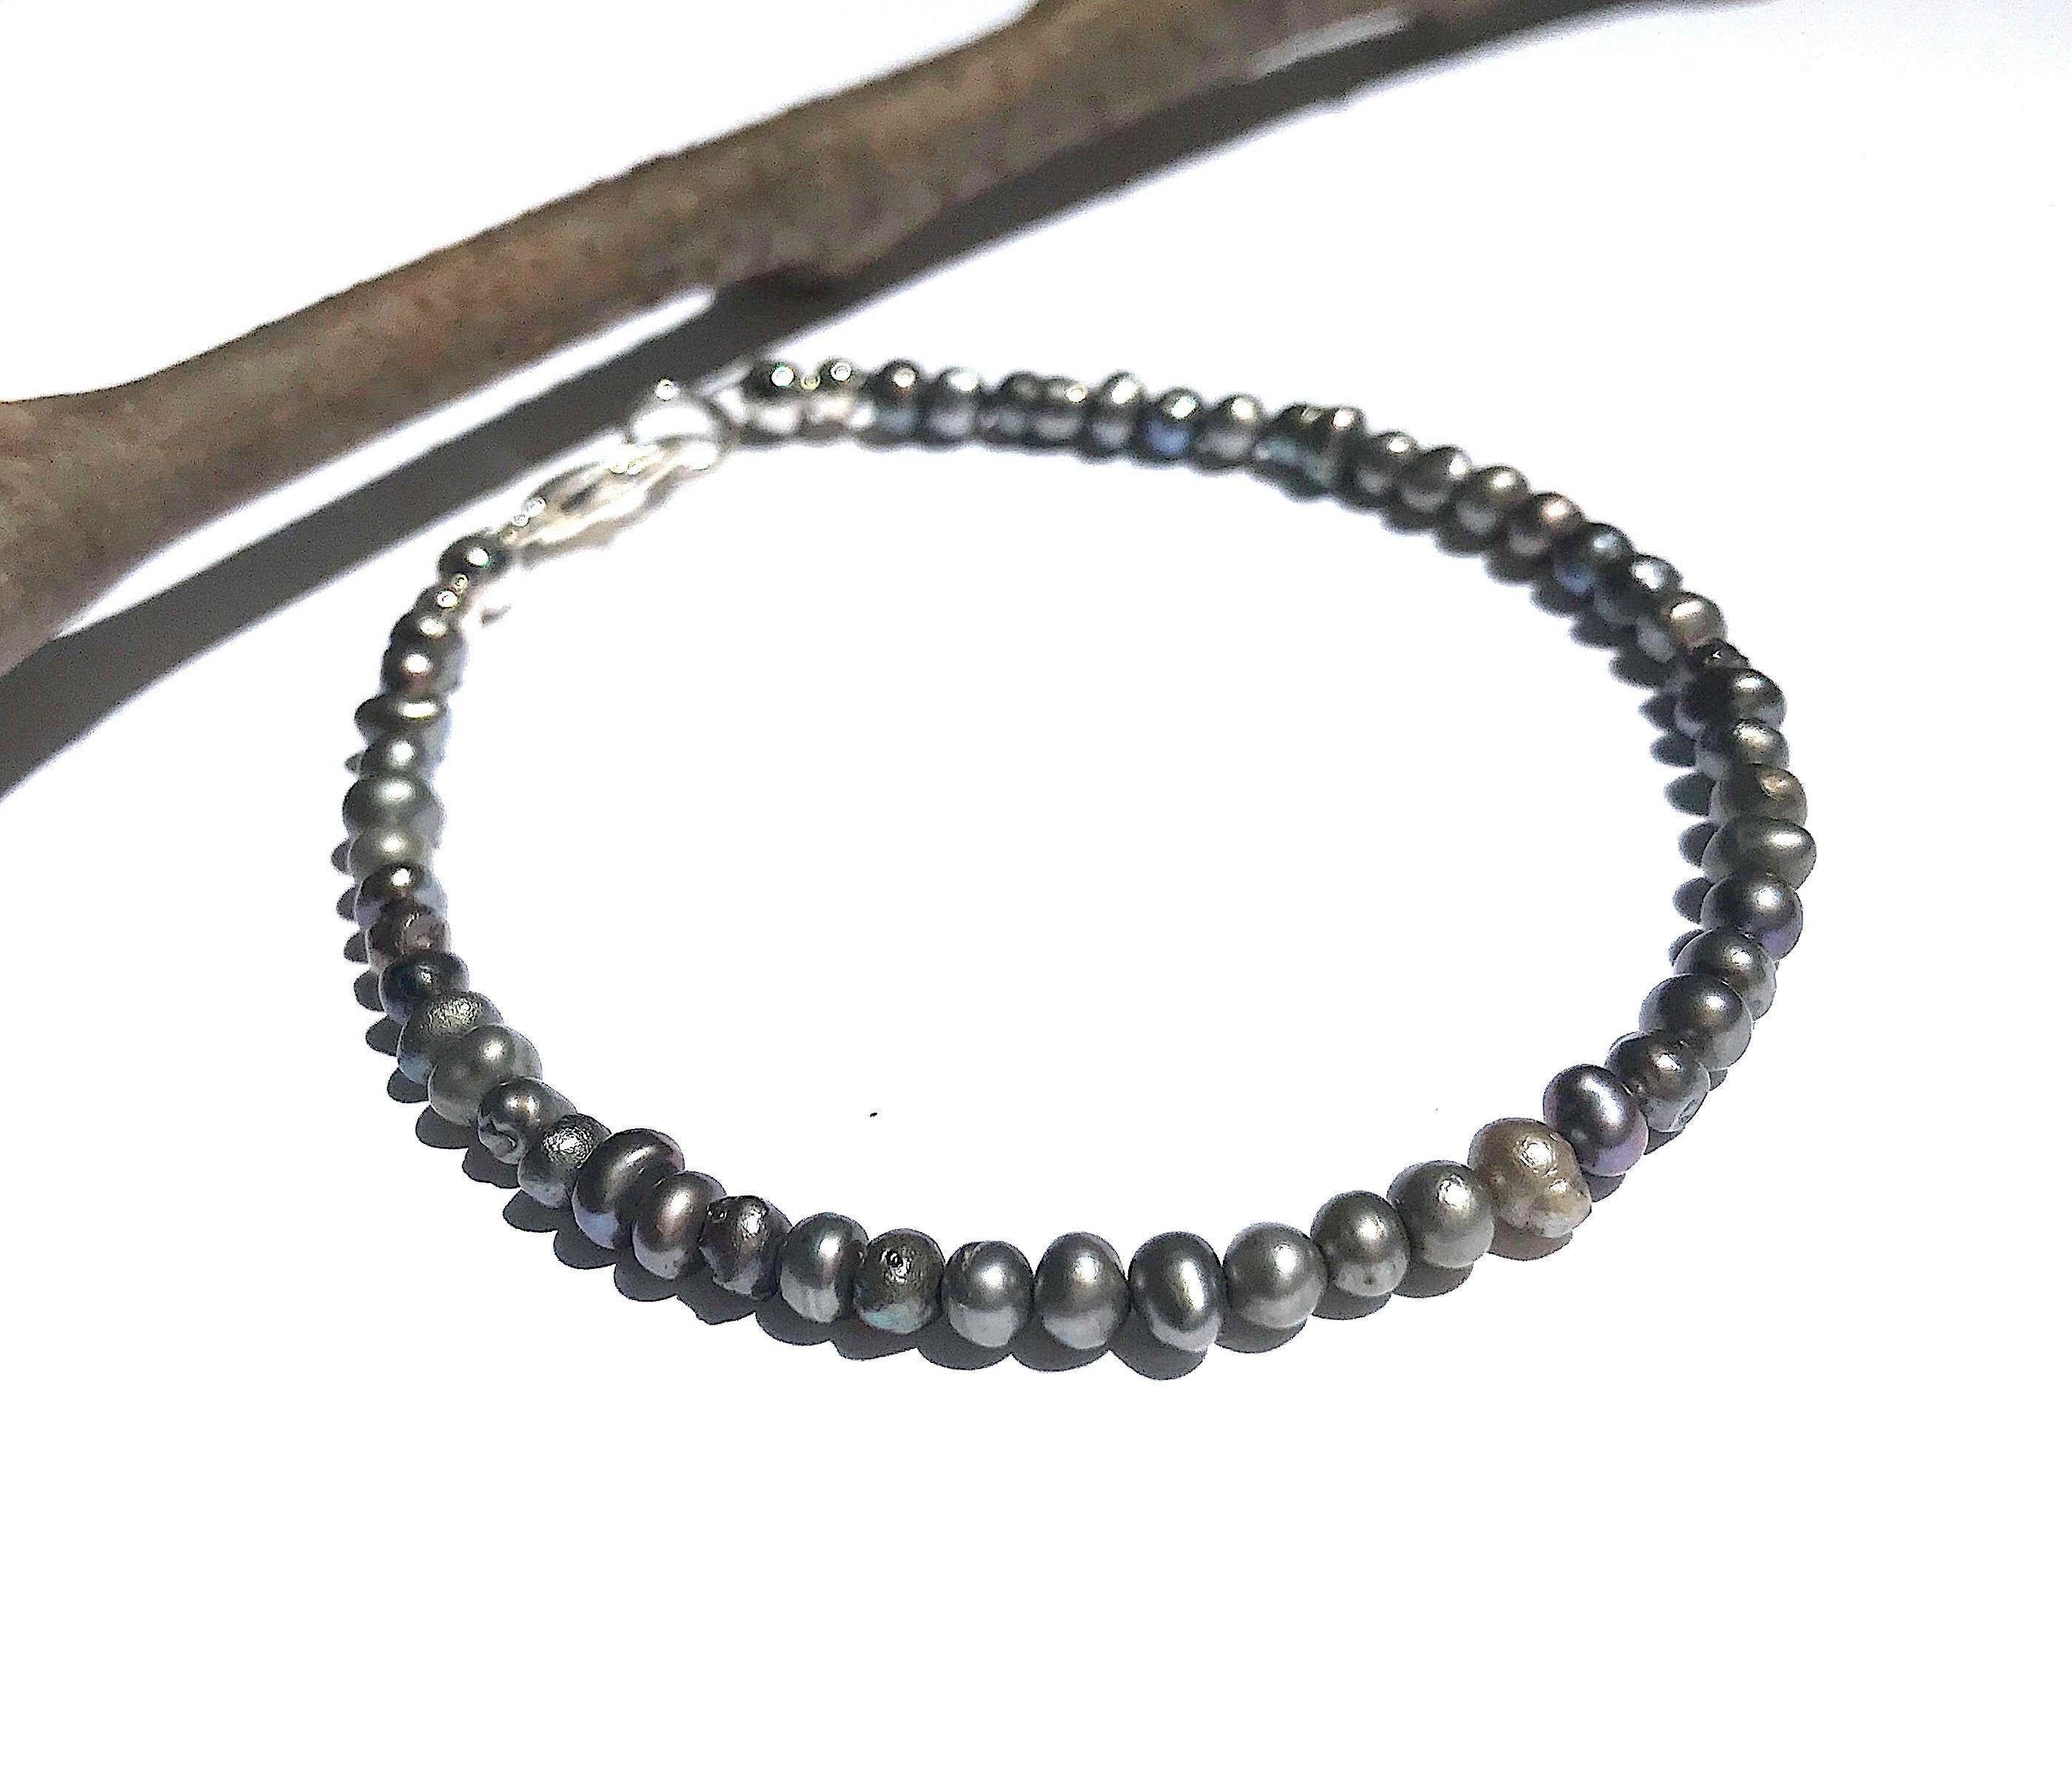 Photo of Tiny Freshwater Pearl Bracelet in Dark Gray, Dainty Jewelry for Women, Unique Gifts for Her, Silvery Grey Color